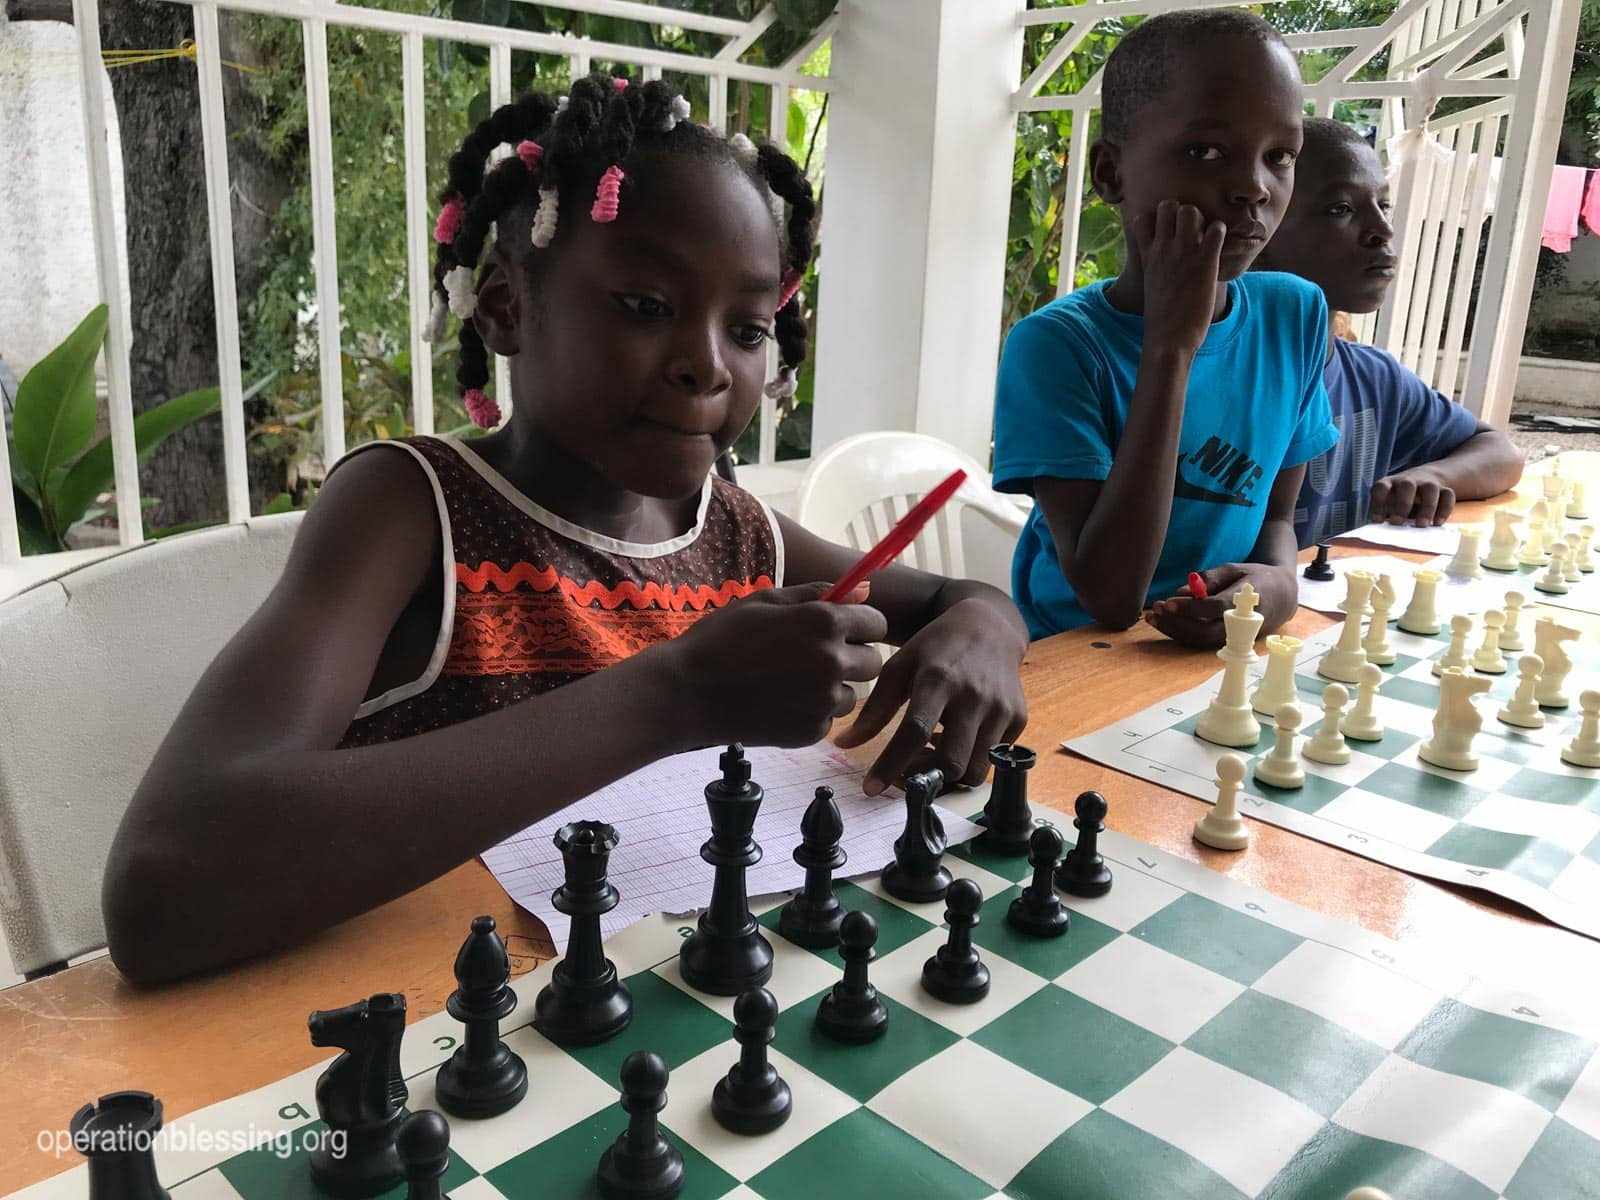 These children are learning important life skills through a chess camp in Haiti.